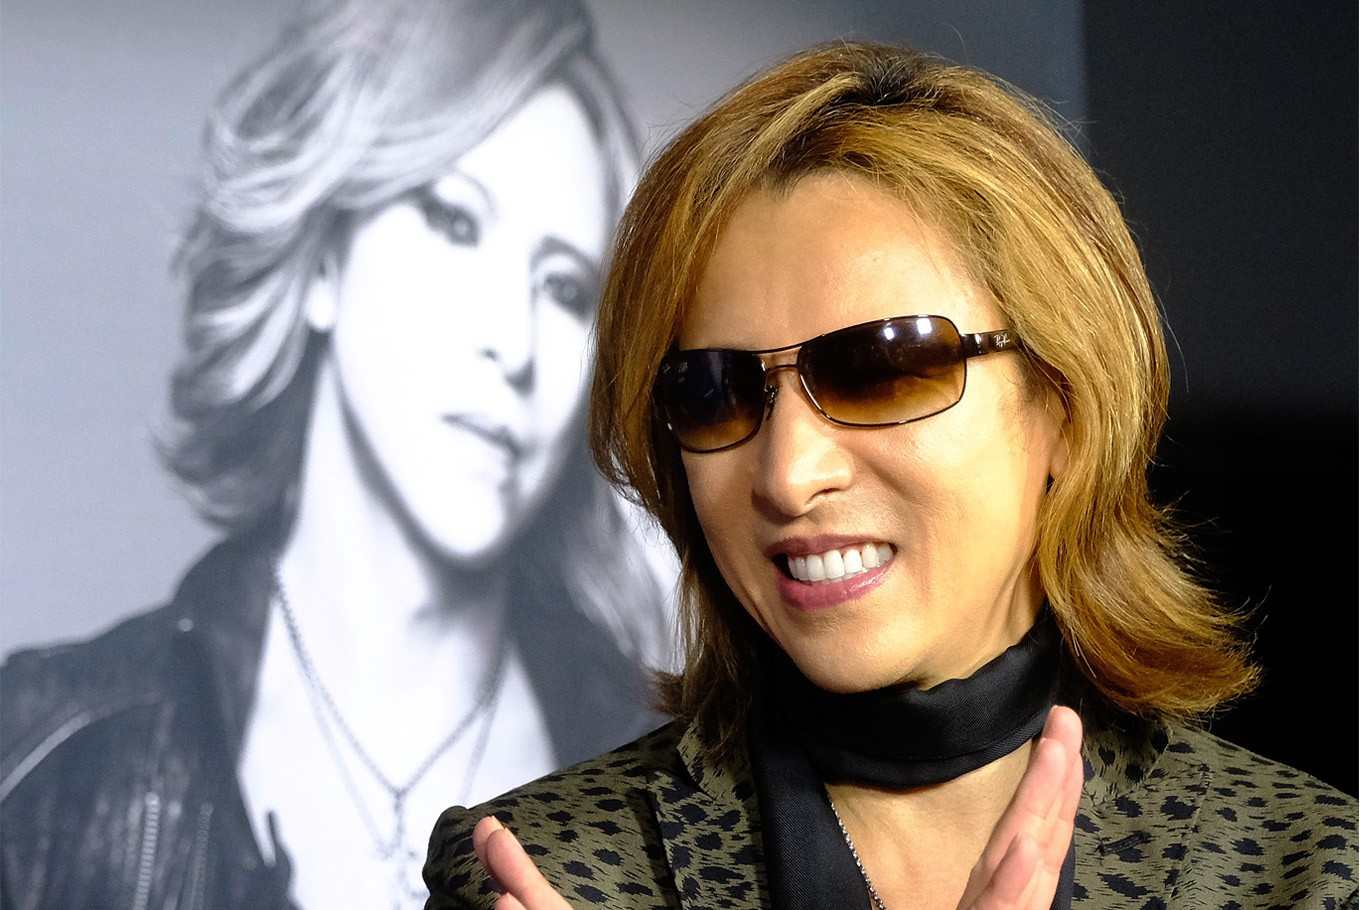 X Japan leader, famed for intense drumming, needs surgery